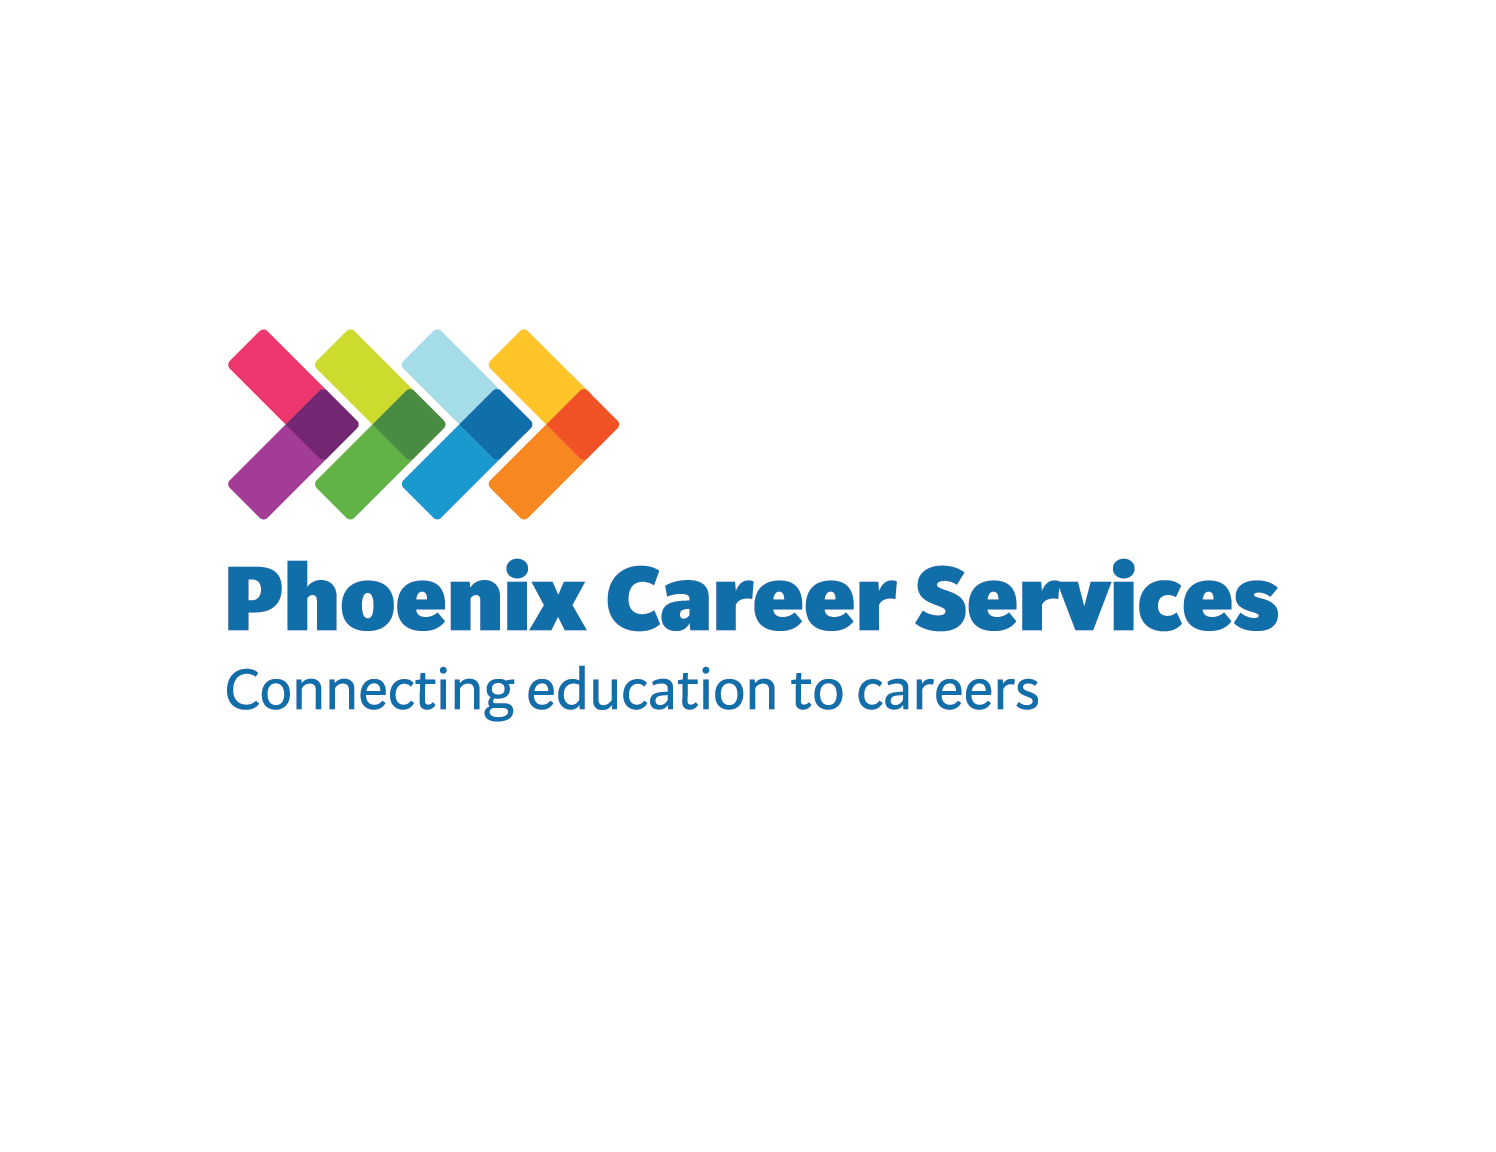 phoenix career services logo